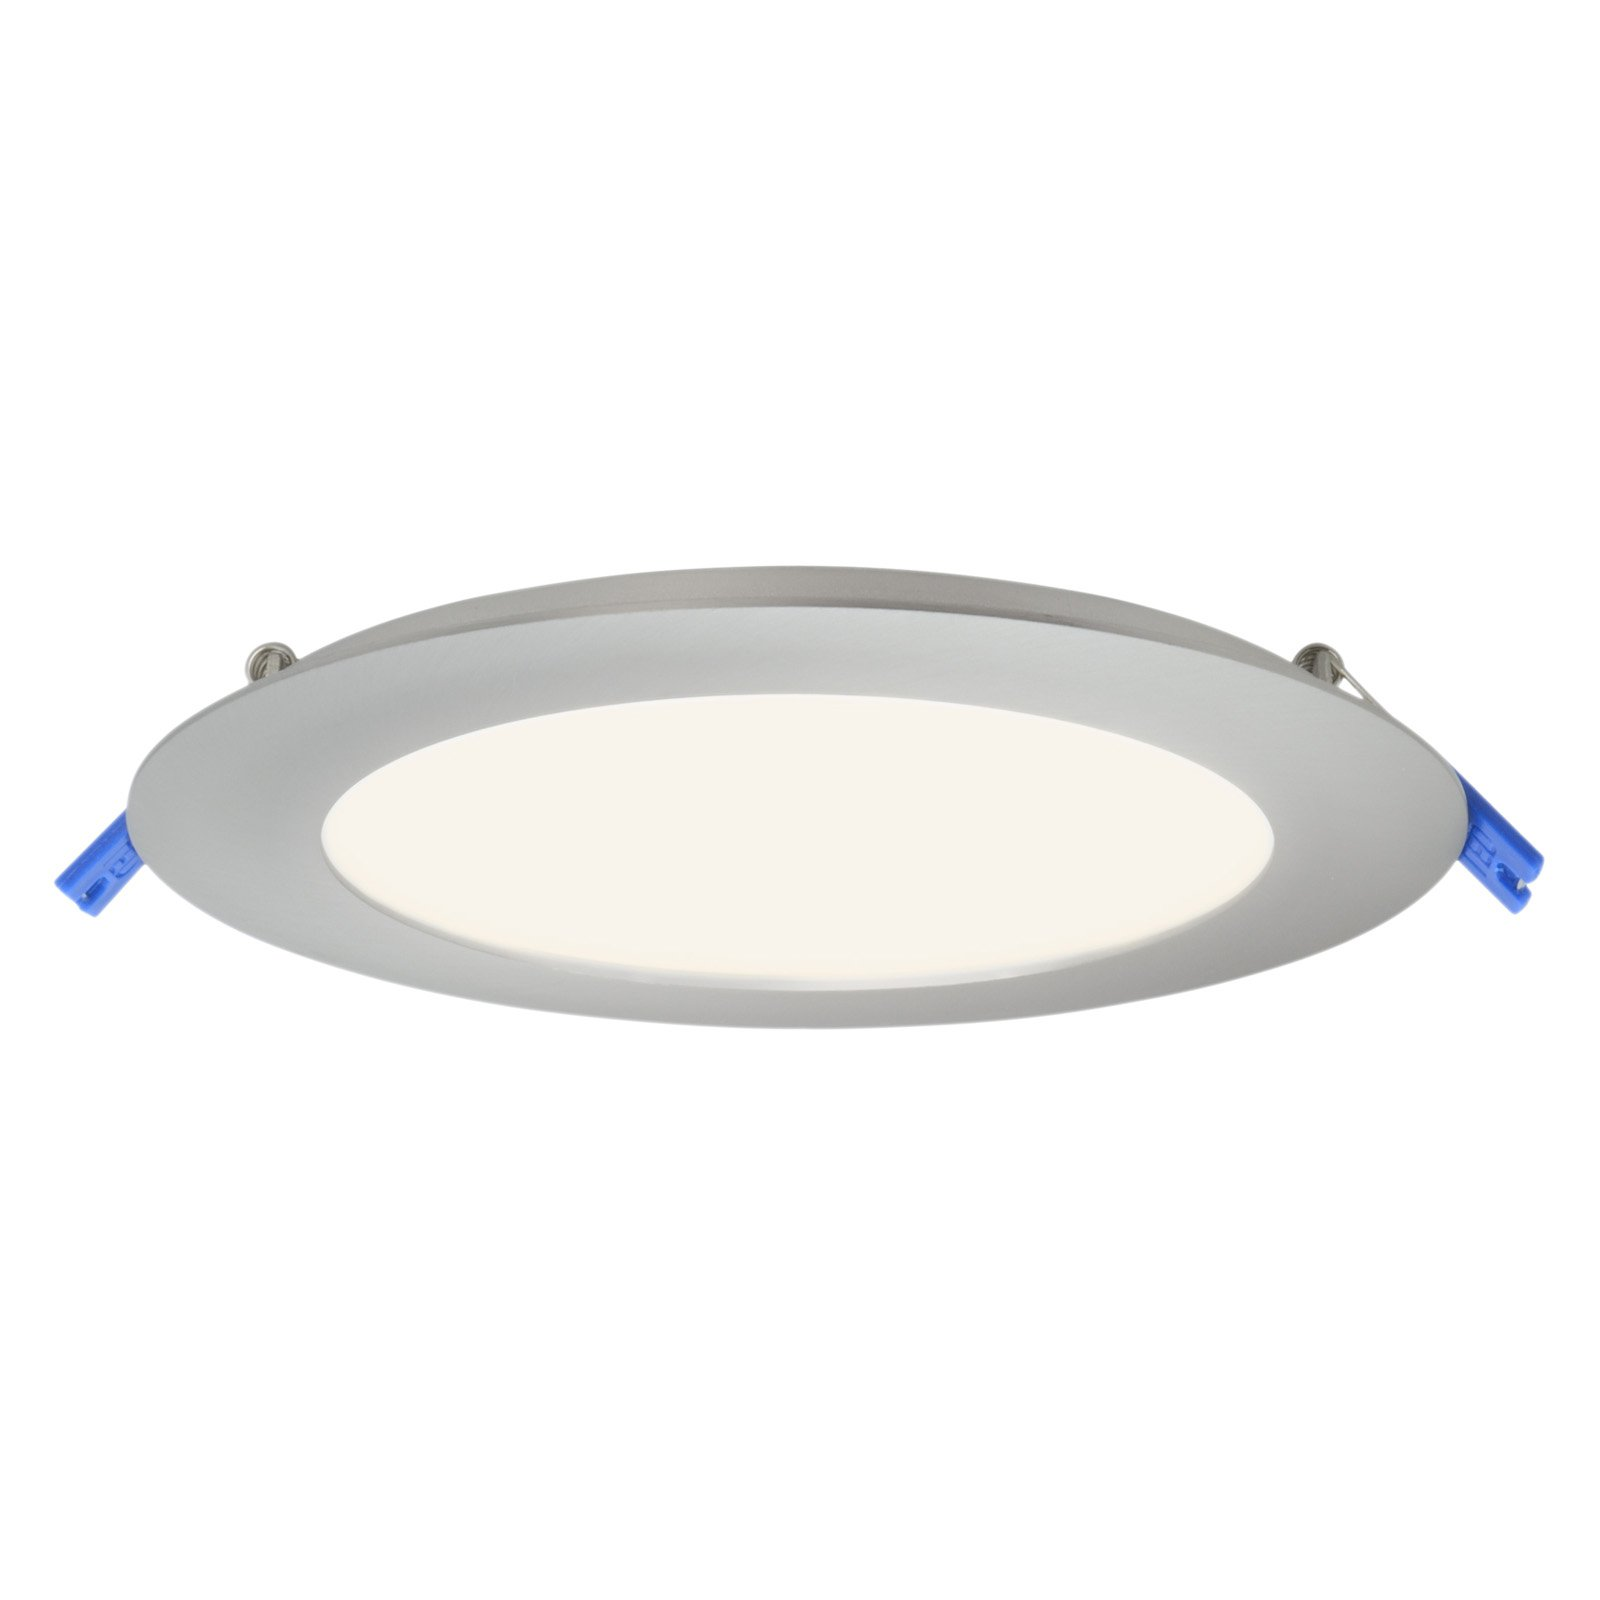 Panel Light Dals Lighting 7006 Round 6 In Led Pro Panel Light